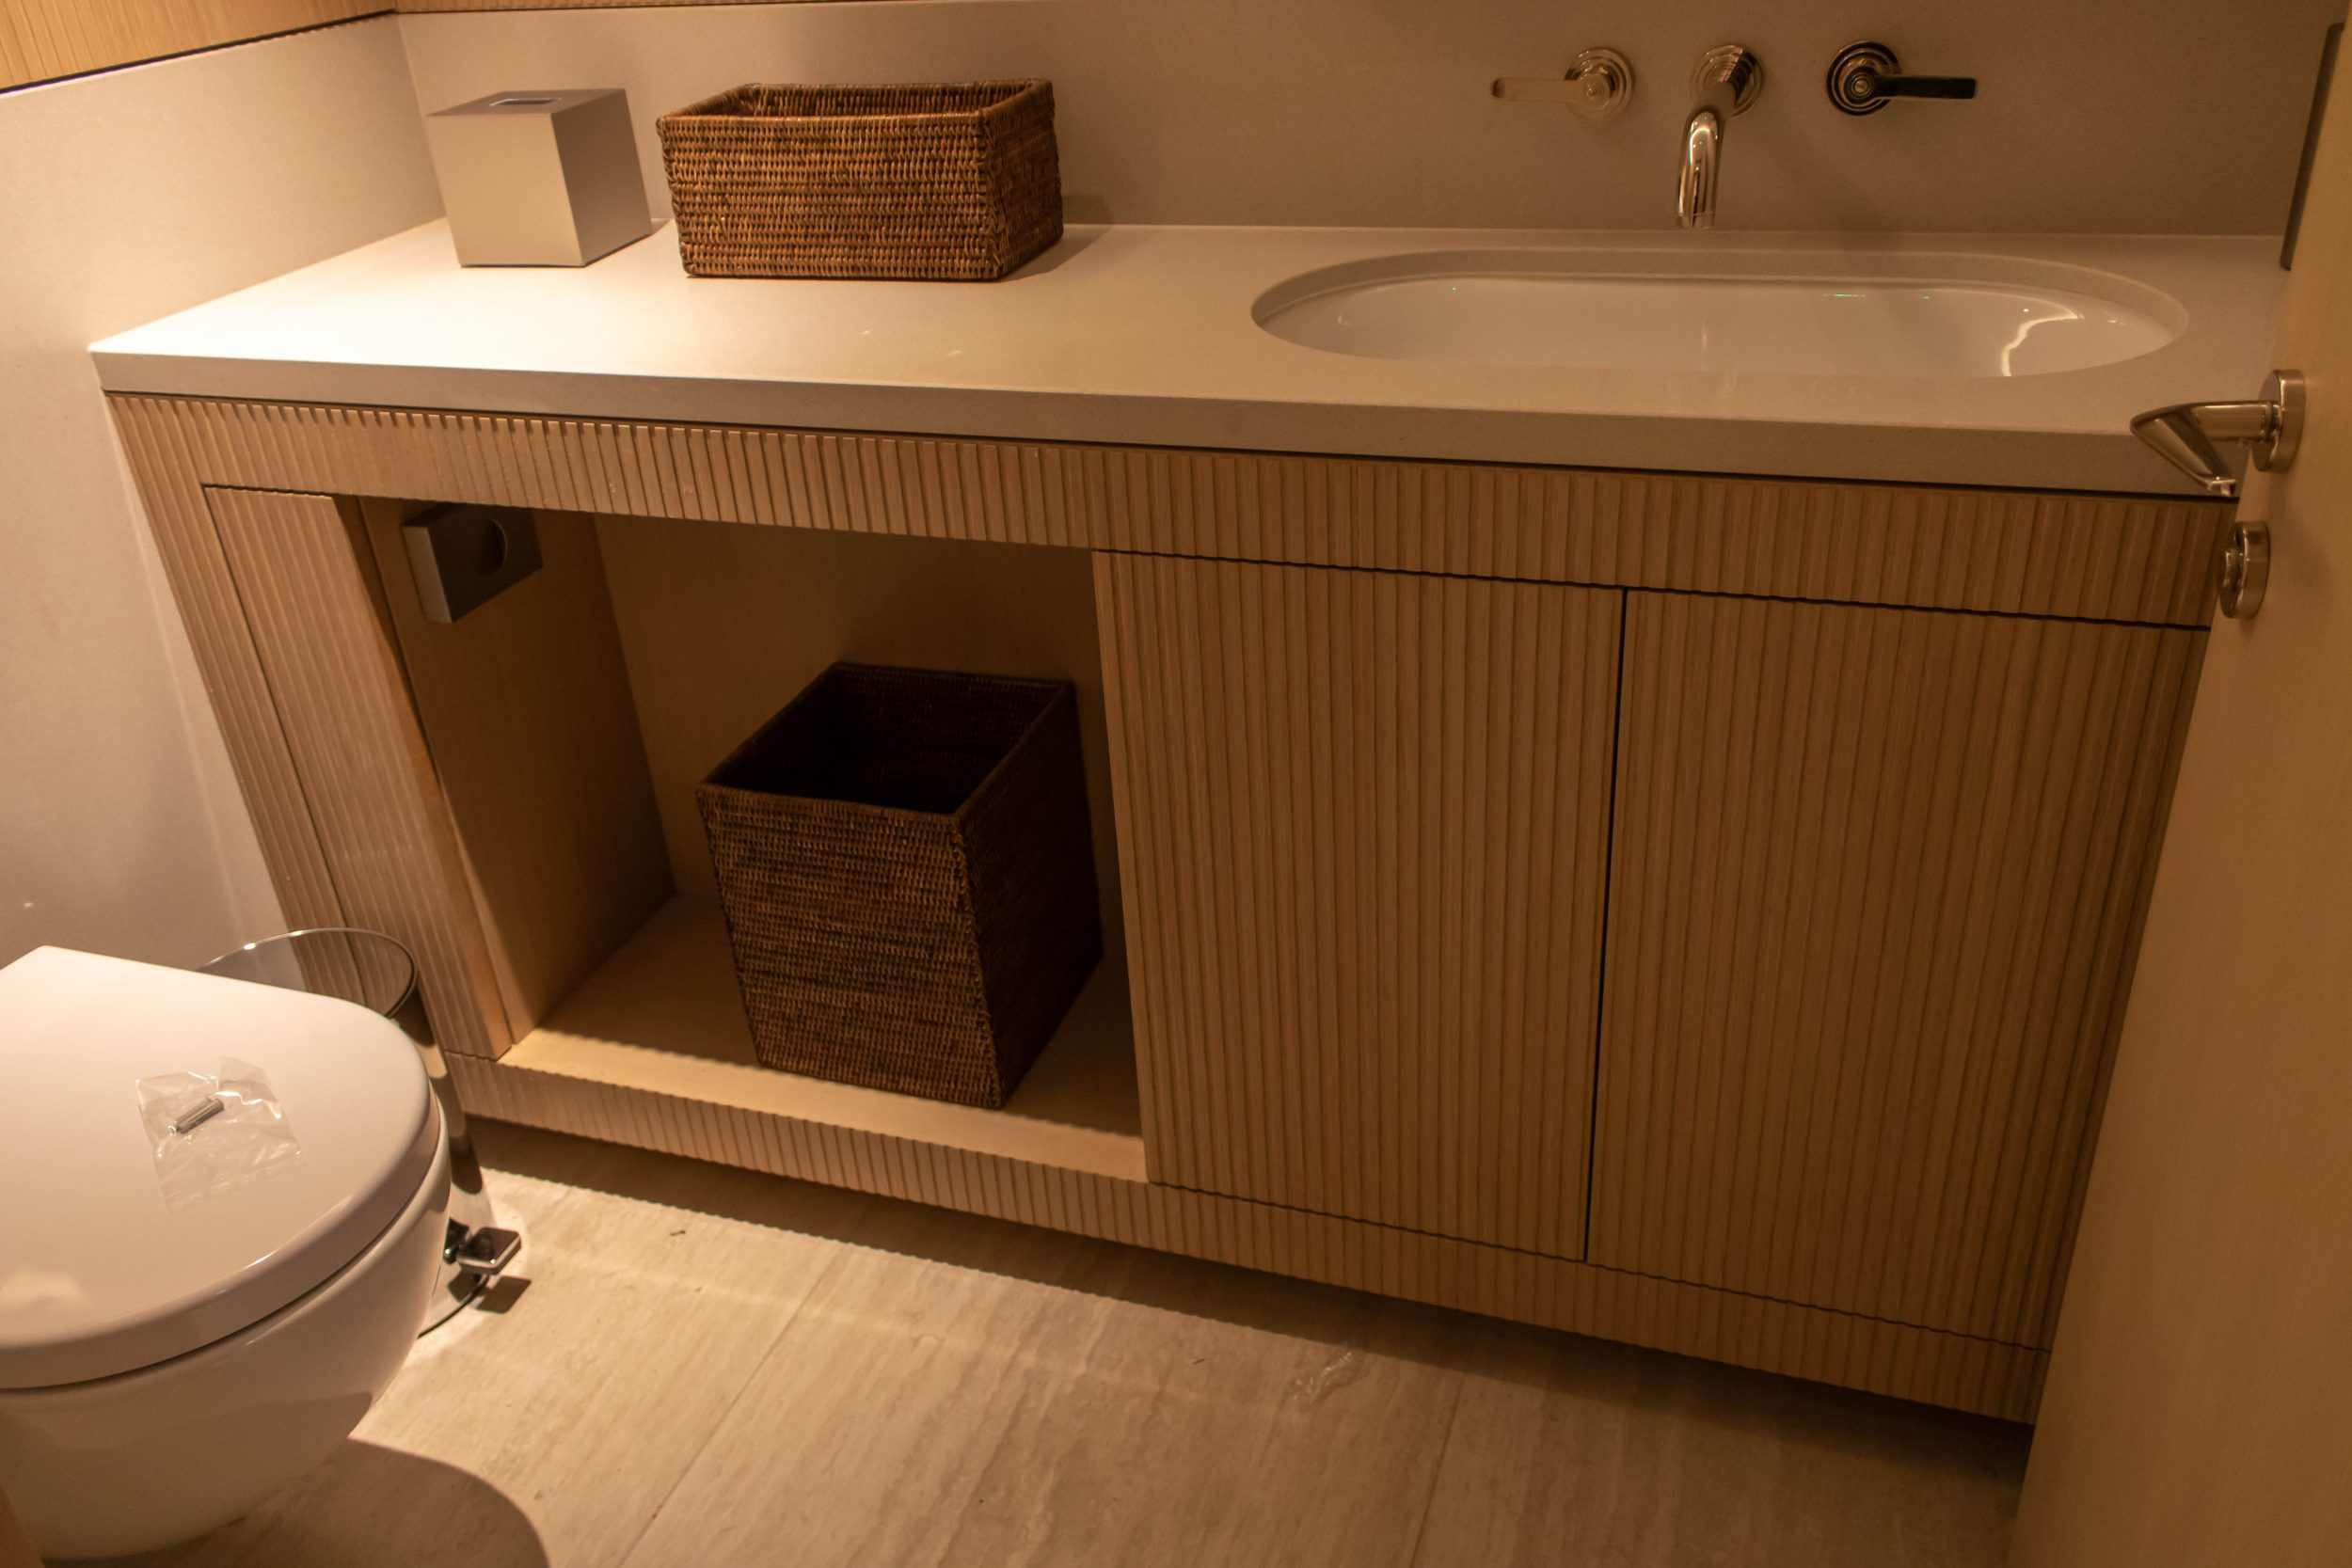 Kandd bathroom cabinetry